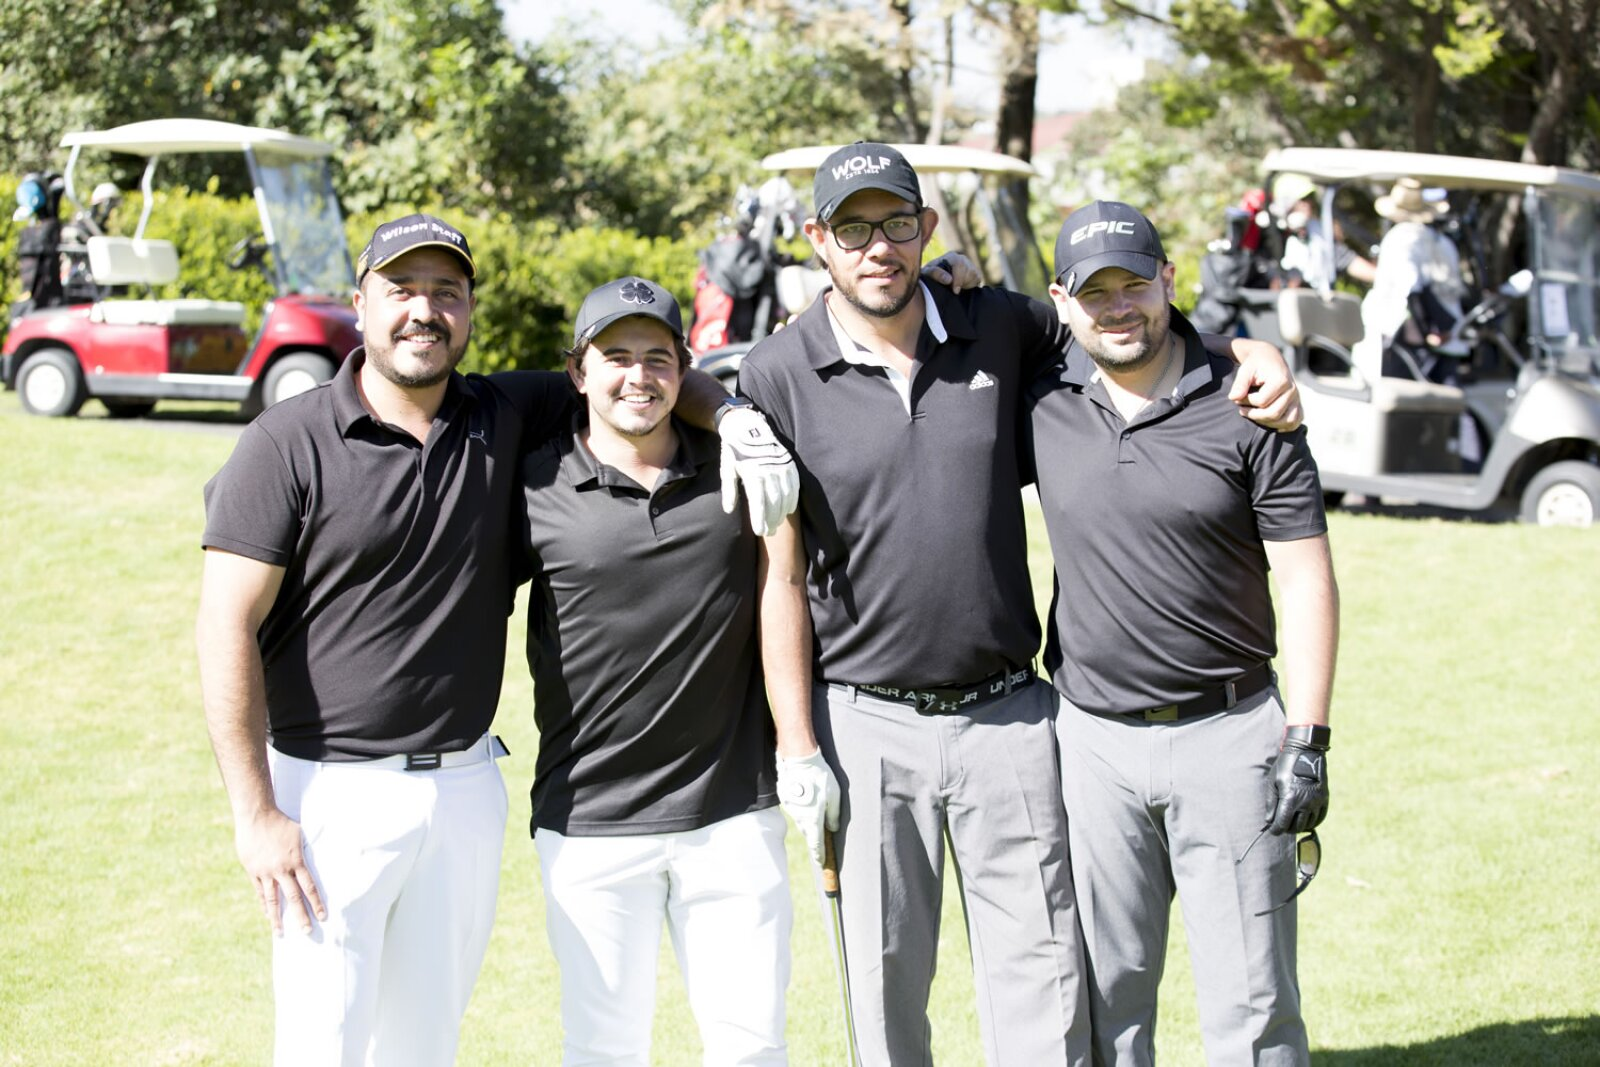 Torneo de golf de Peyrelongue